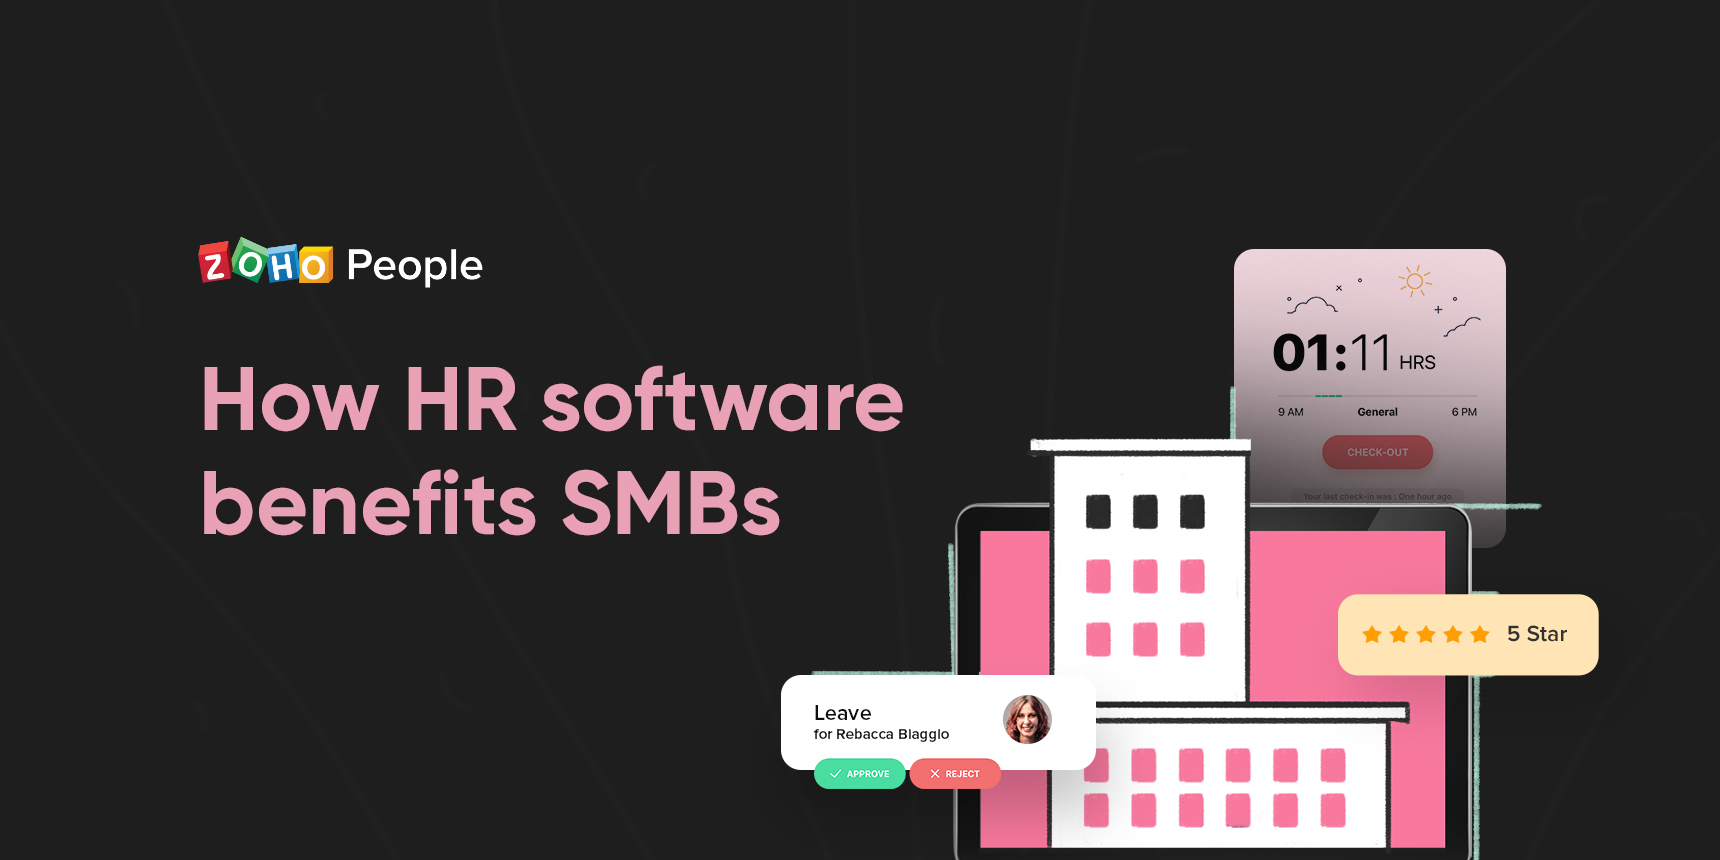 Benefits of HR Software for SMBs